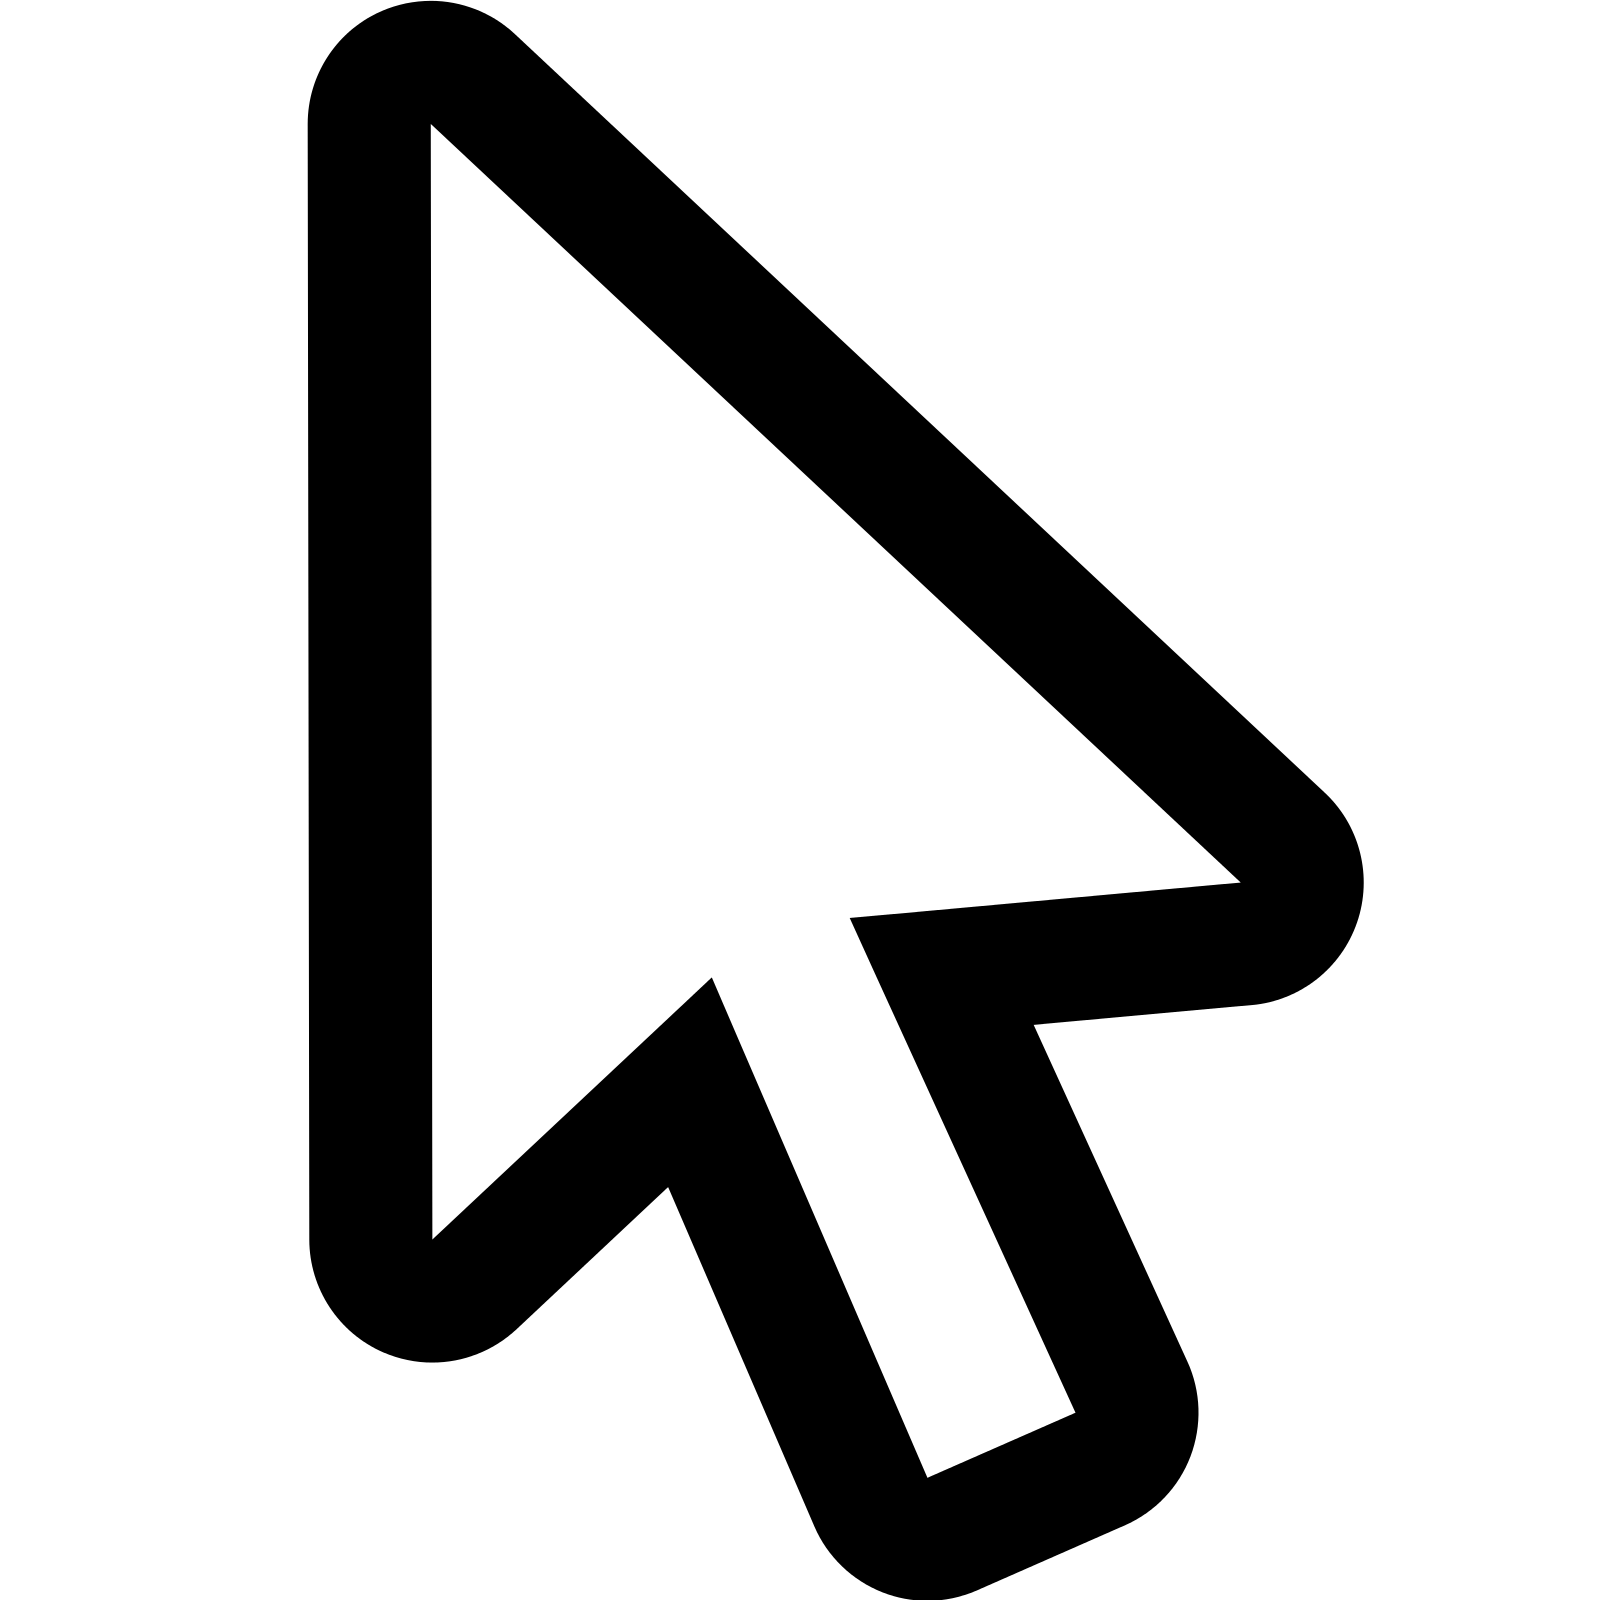 Grab and download Cursor PNG in High Resolution